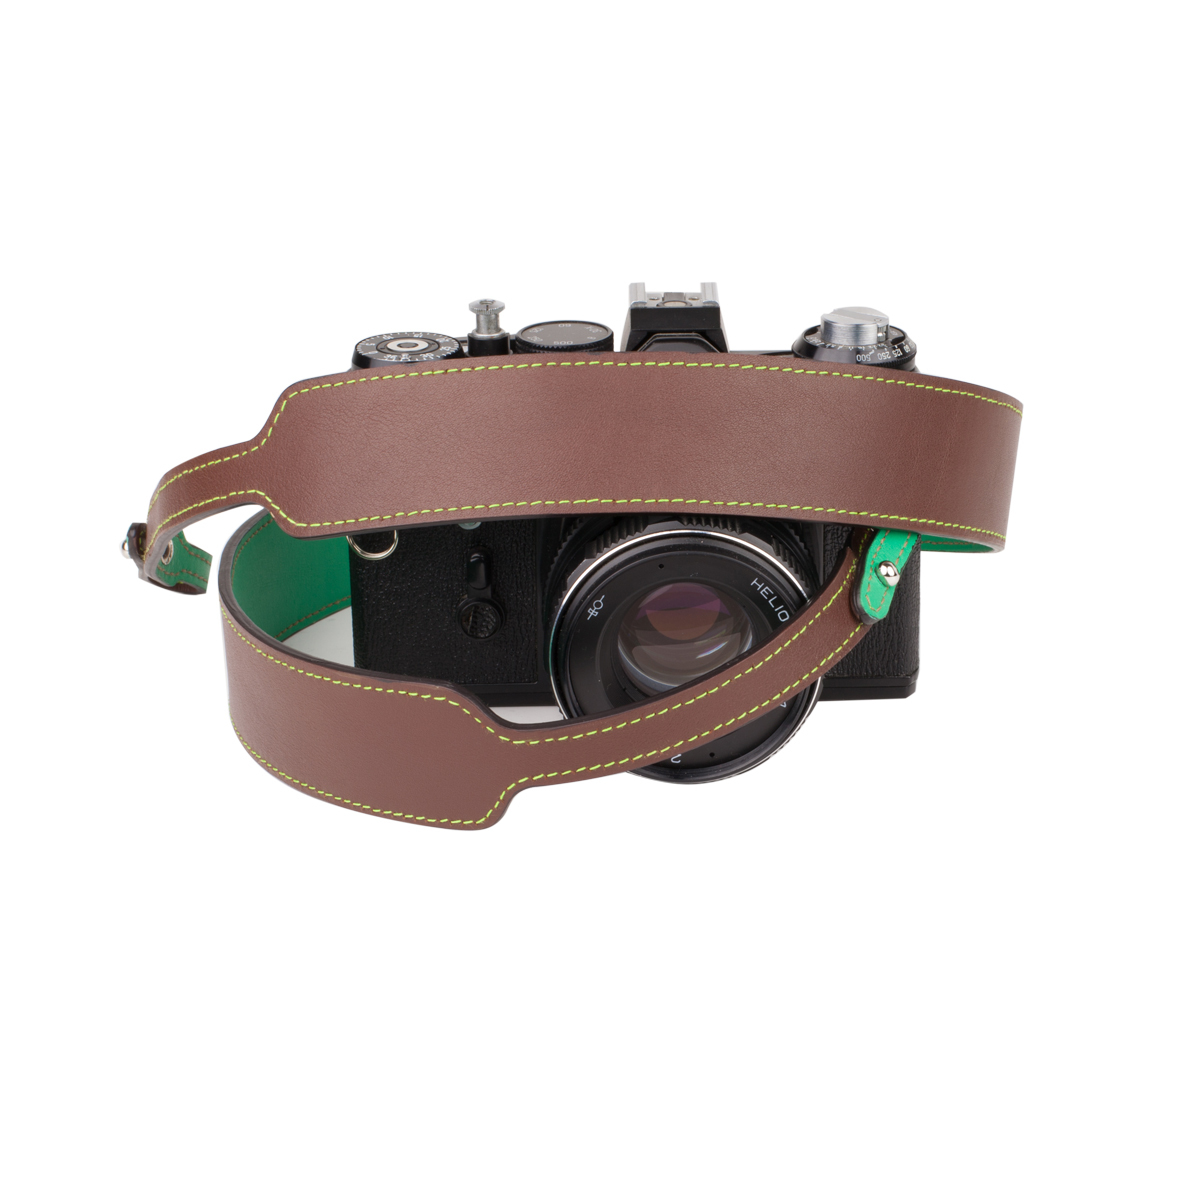 Camera strap in brown color